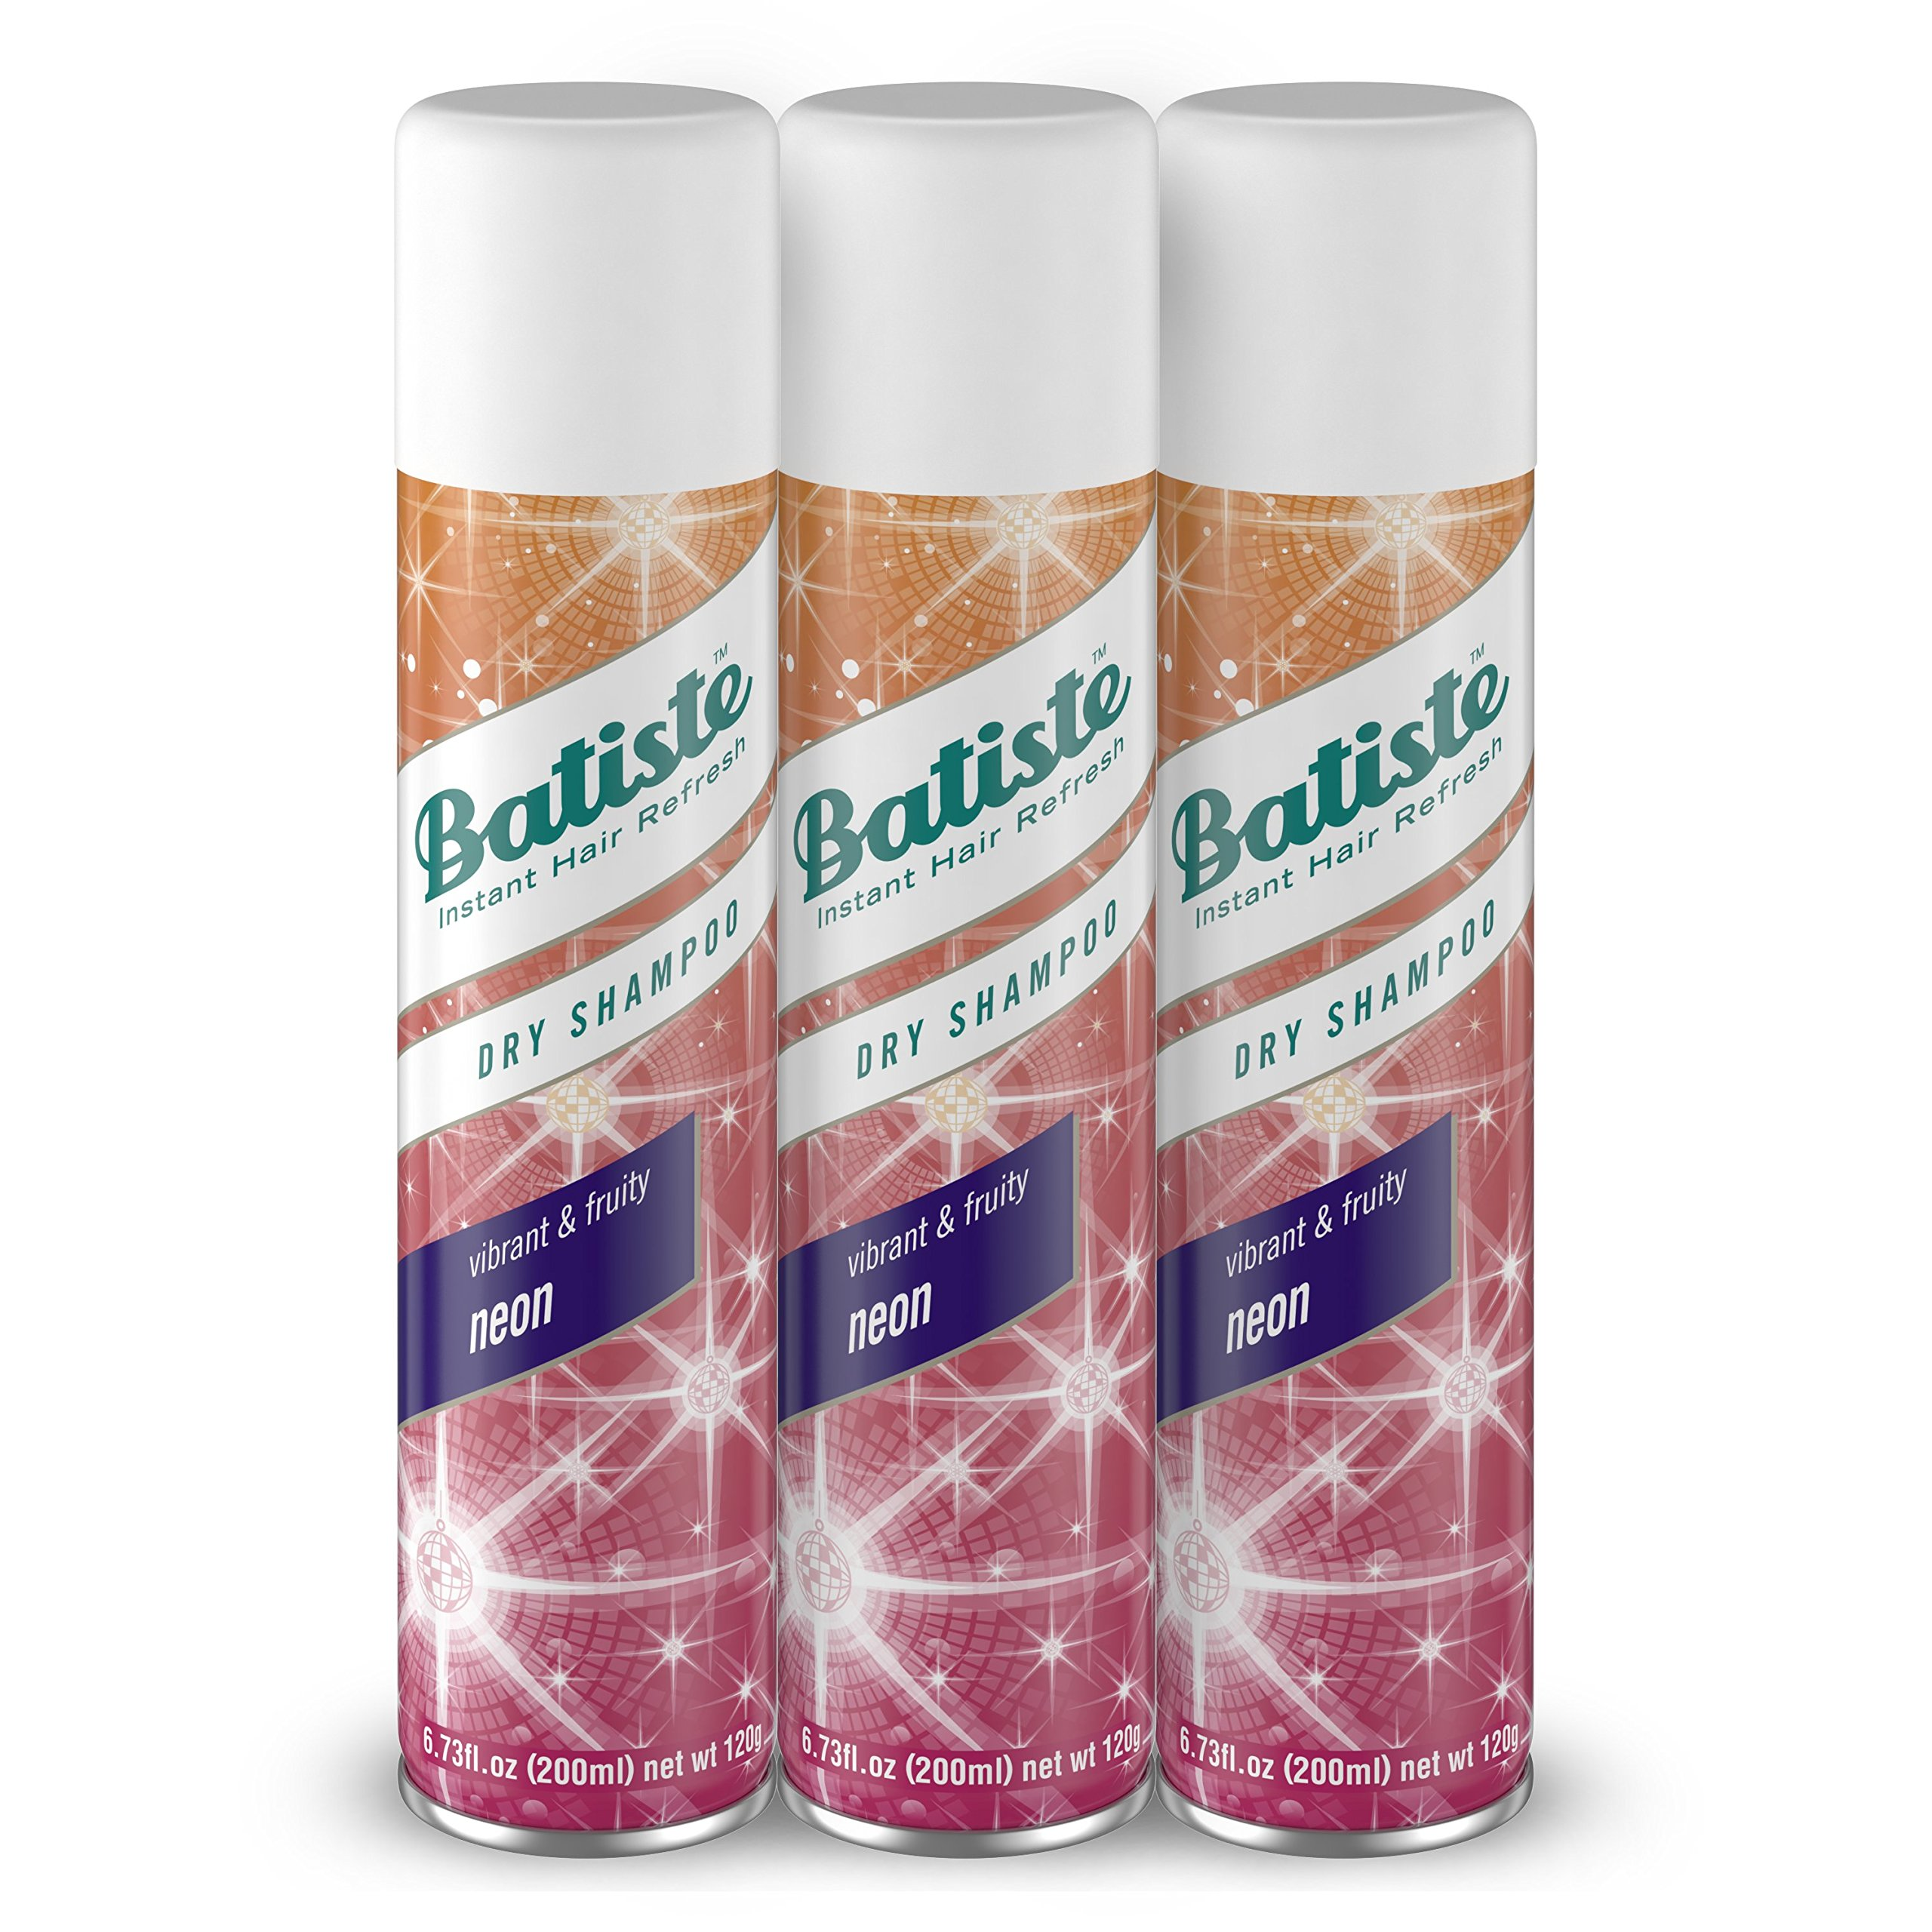 Batiste Dry Shampoo, Neon, 3 Count (Pack of 4) by Batiste (Image #1)